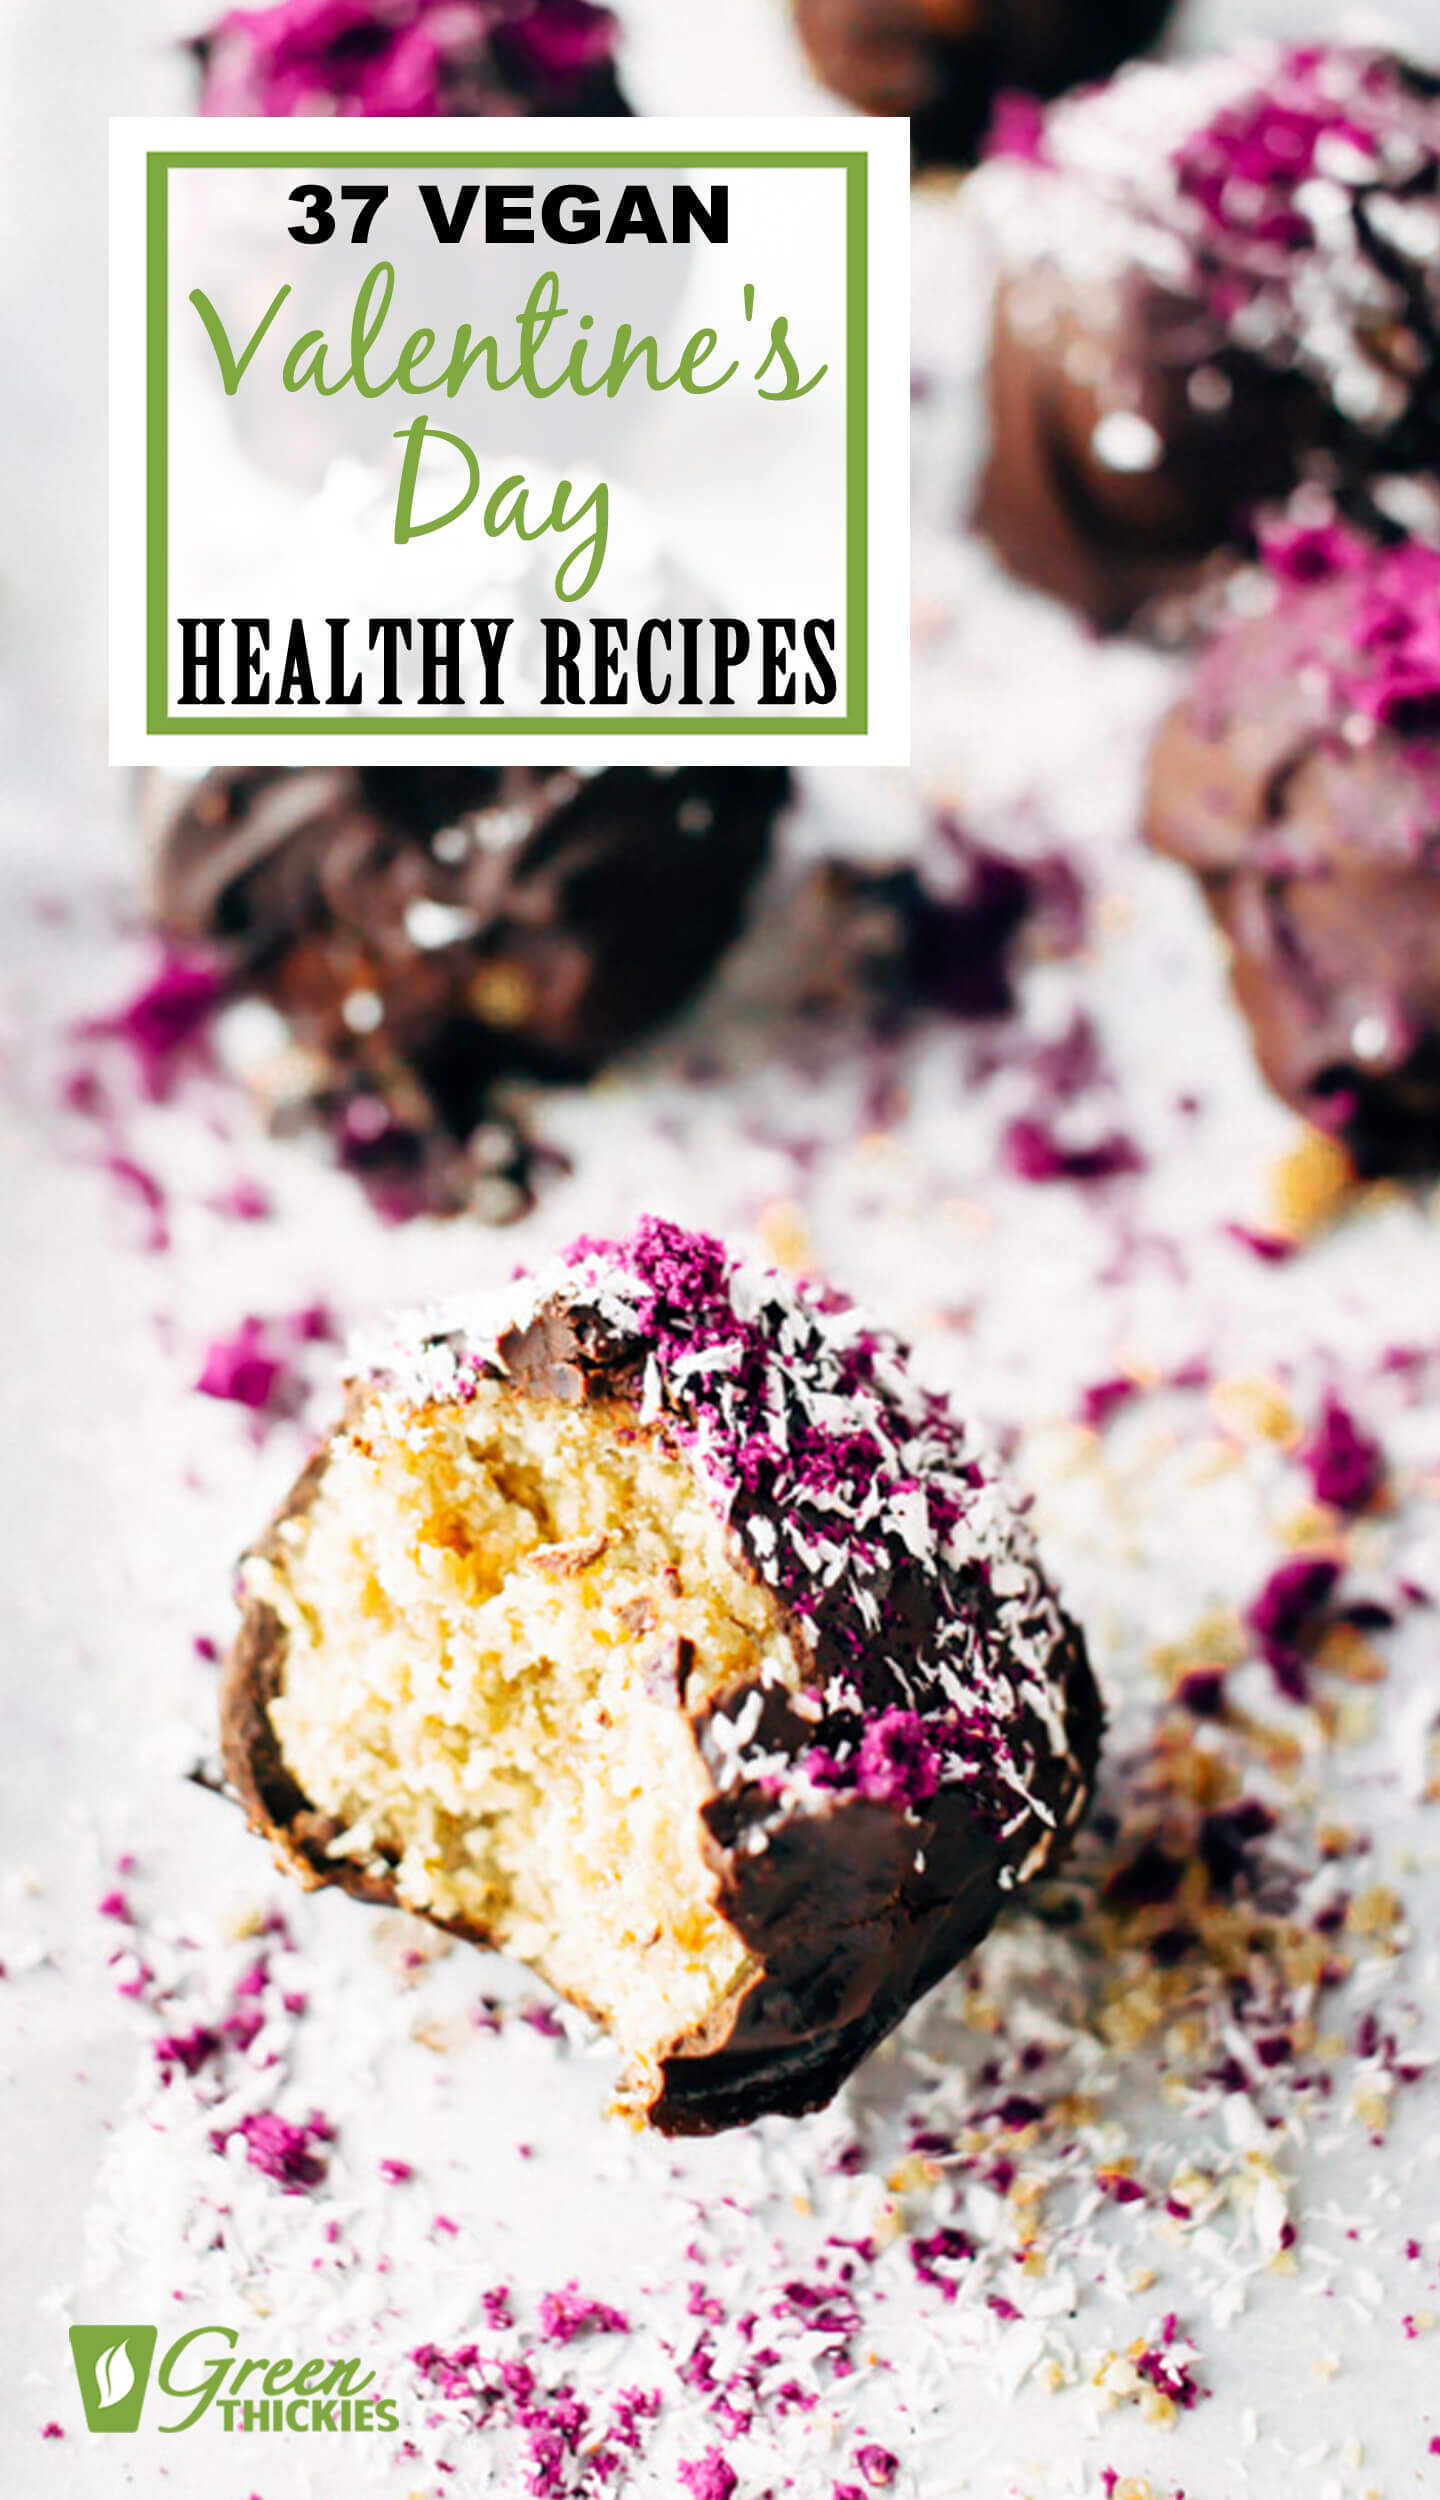 These healthy valentine's day recipes will help you indulge without creating any additional bulge on your body! Treating yourself on special occasions is fun at the time, but very soon, you end up feeling bloated, guilty and not so happy with yourself. Who wants to look bloated on a romantic occasion? So why not make some tasty recipes that just so happen to be healthy at the same time? Click the link to get them. #greenthickies #valentinesday #valentinesdayrecipes #valentinesdayfood